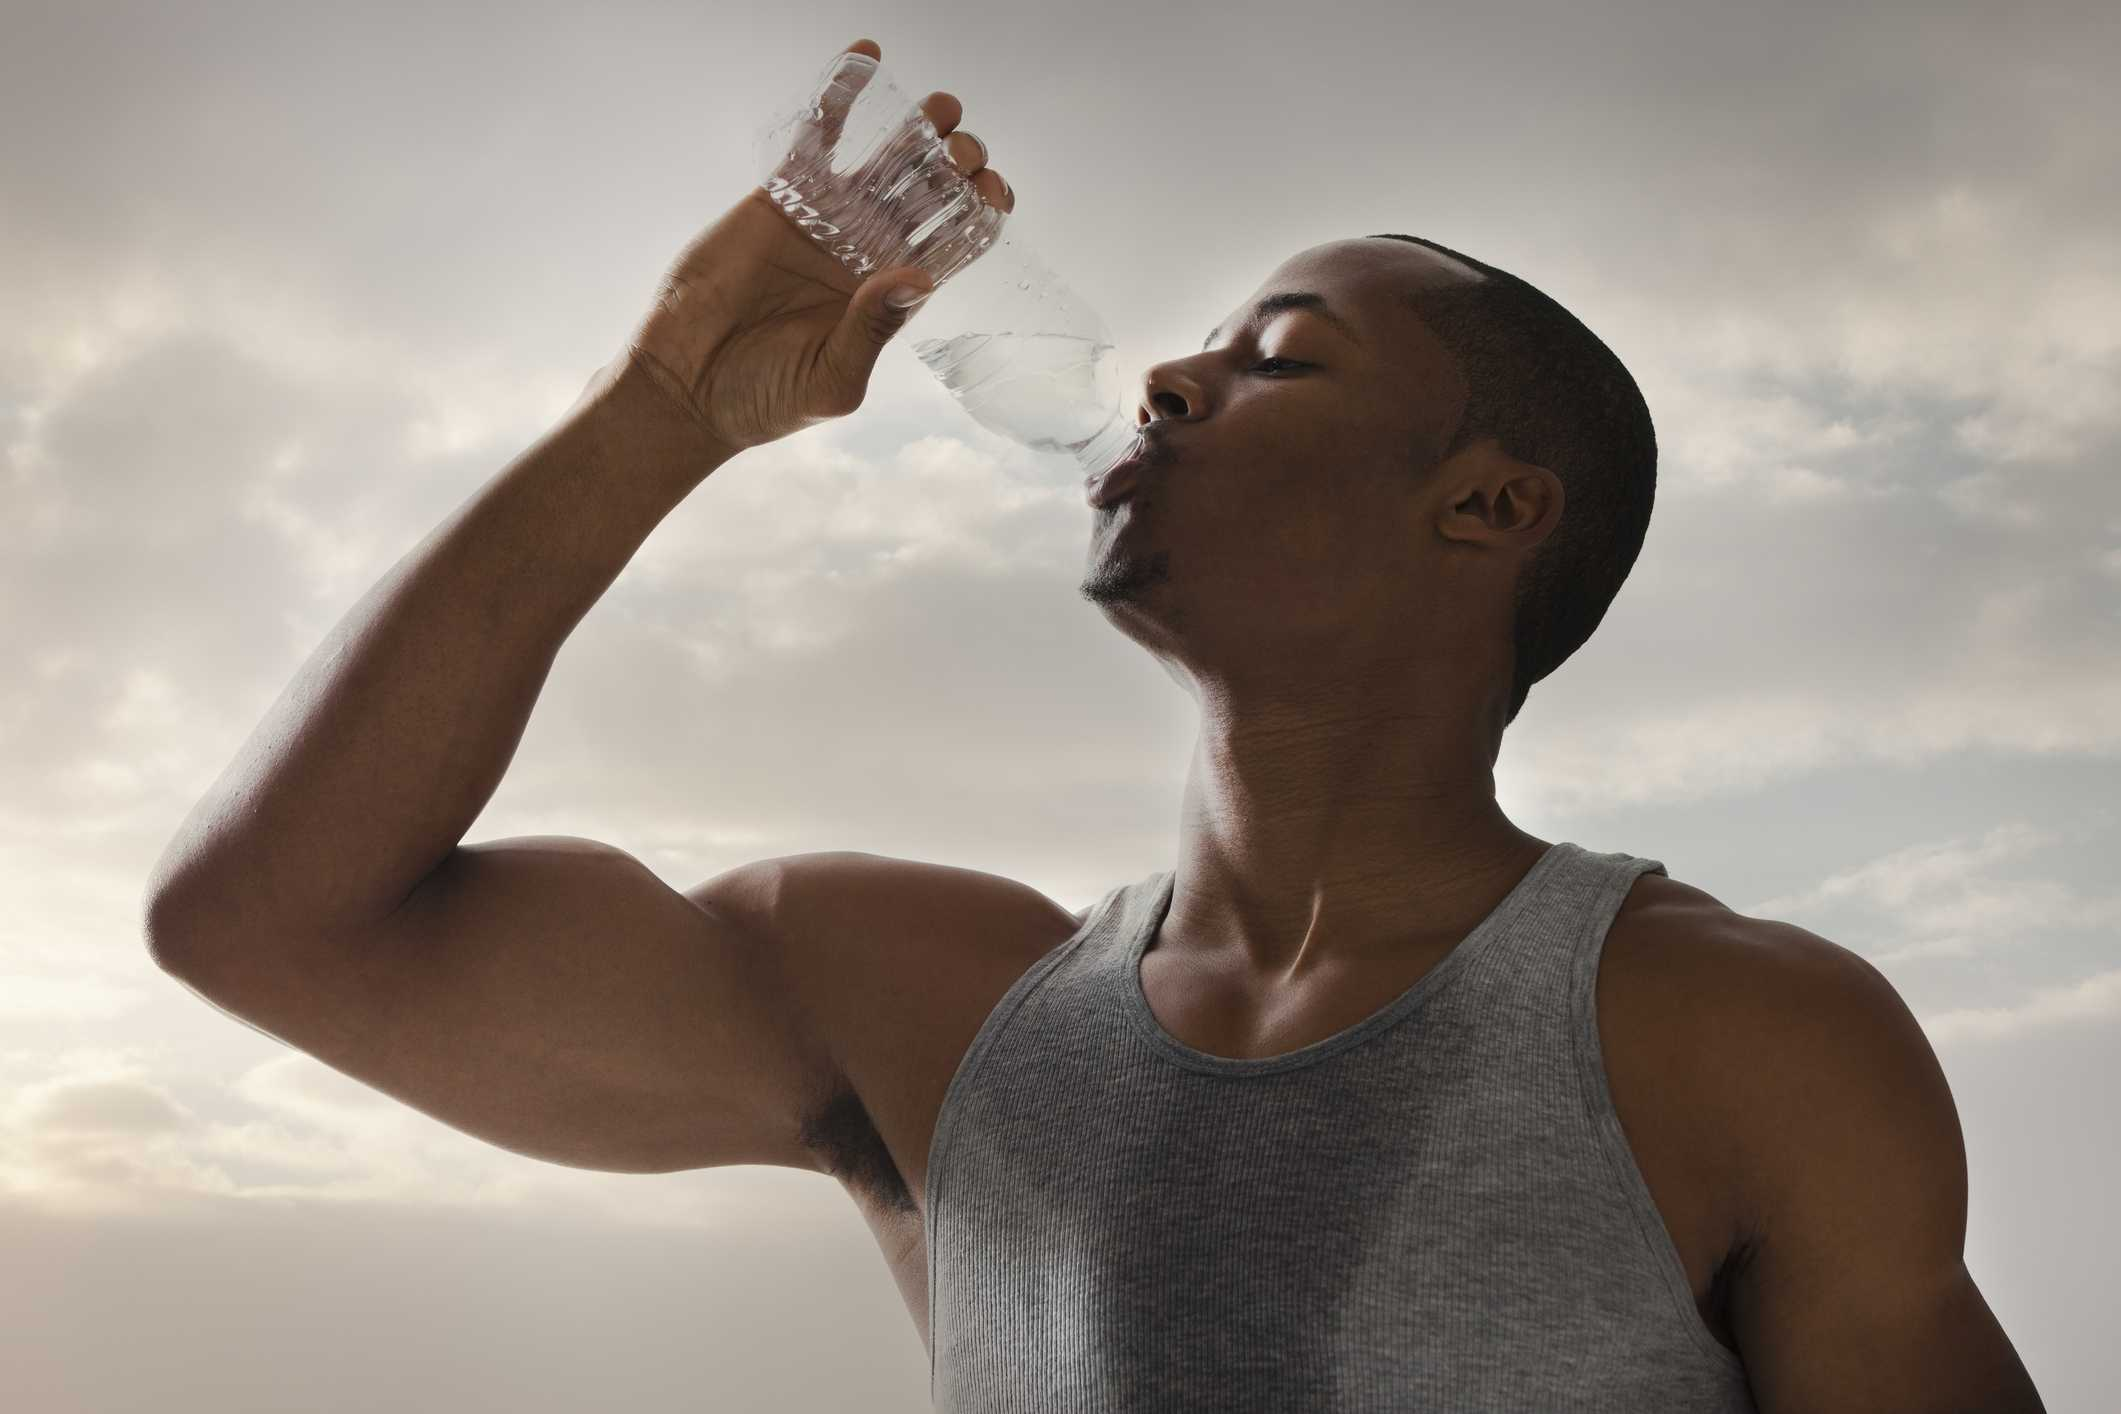 Exactly how much water you should drink to lose weight